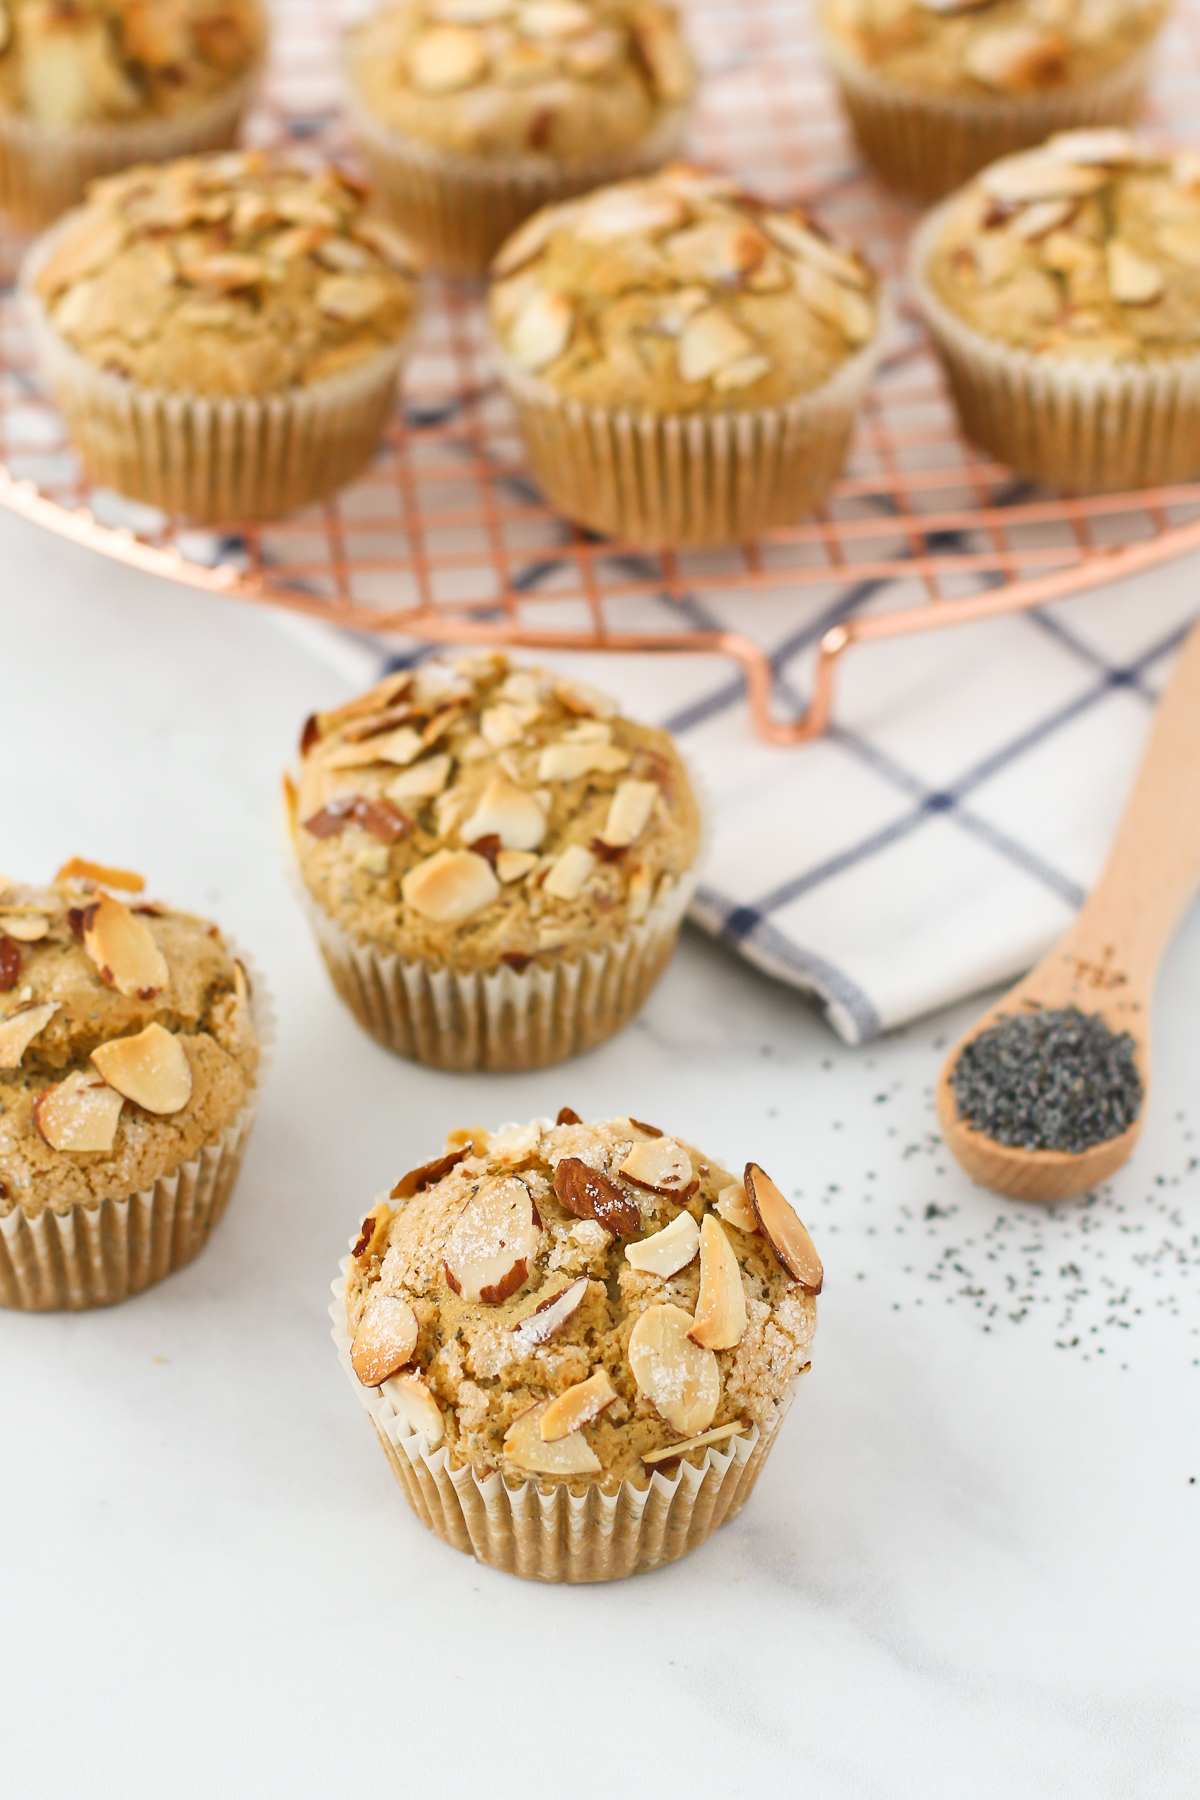 Gluten Free Vegan Almond Poppyseed Muffins. Tender poppyseed muffins, with the crunch of toasted almonds. Such a lovely morning treat!